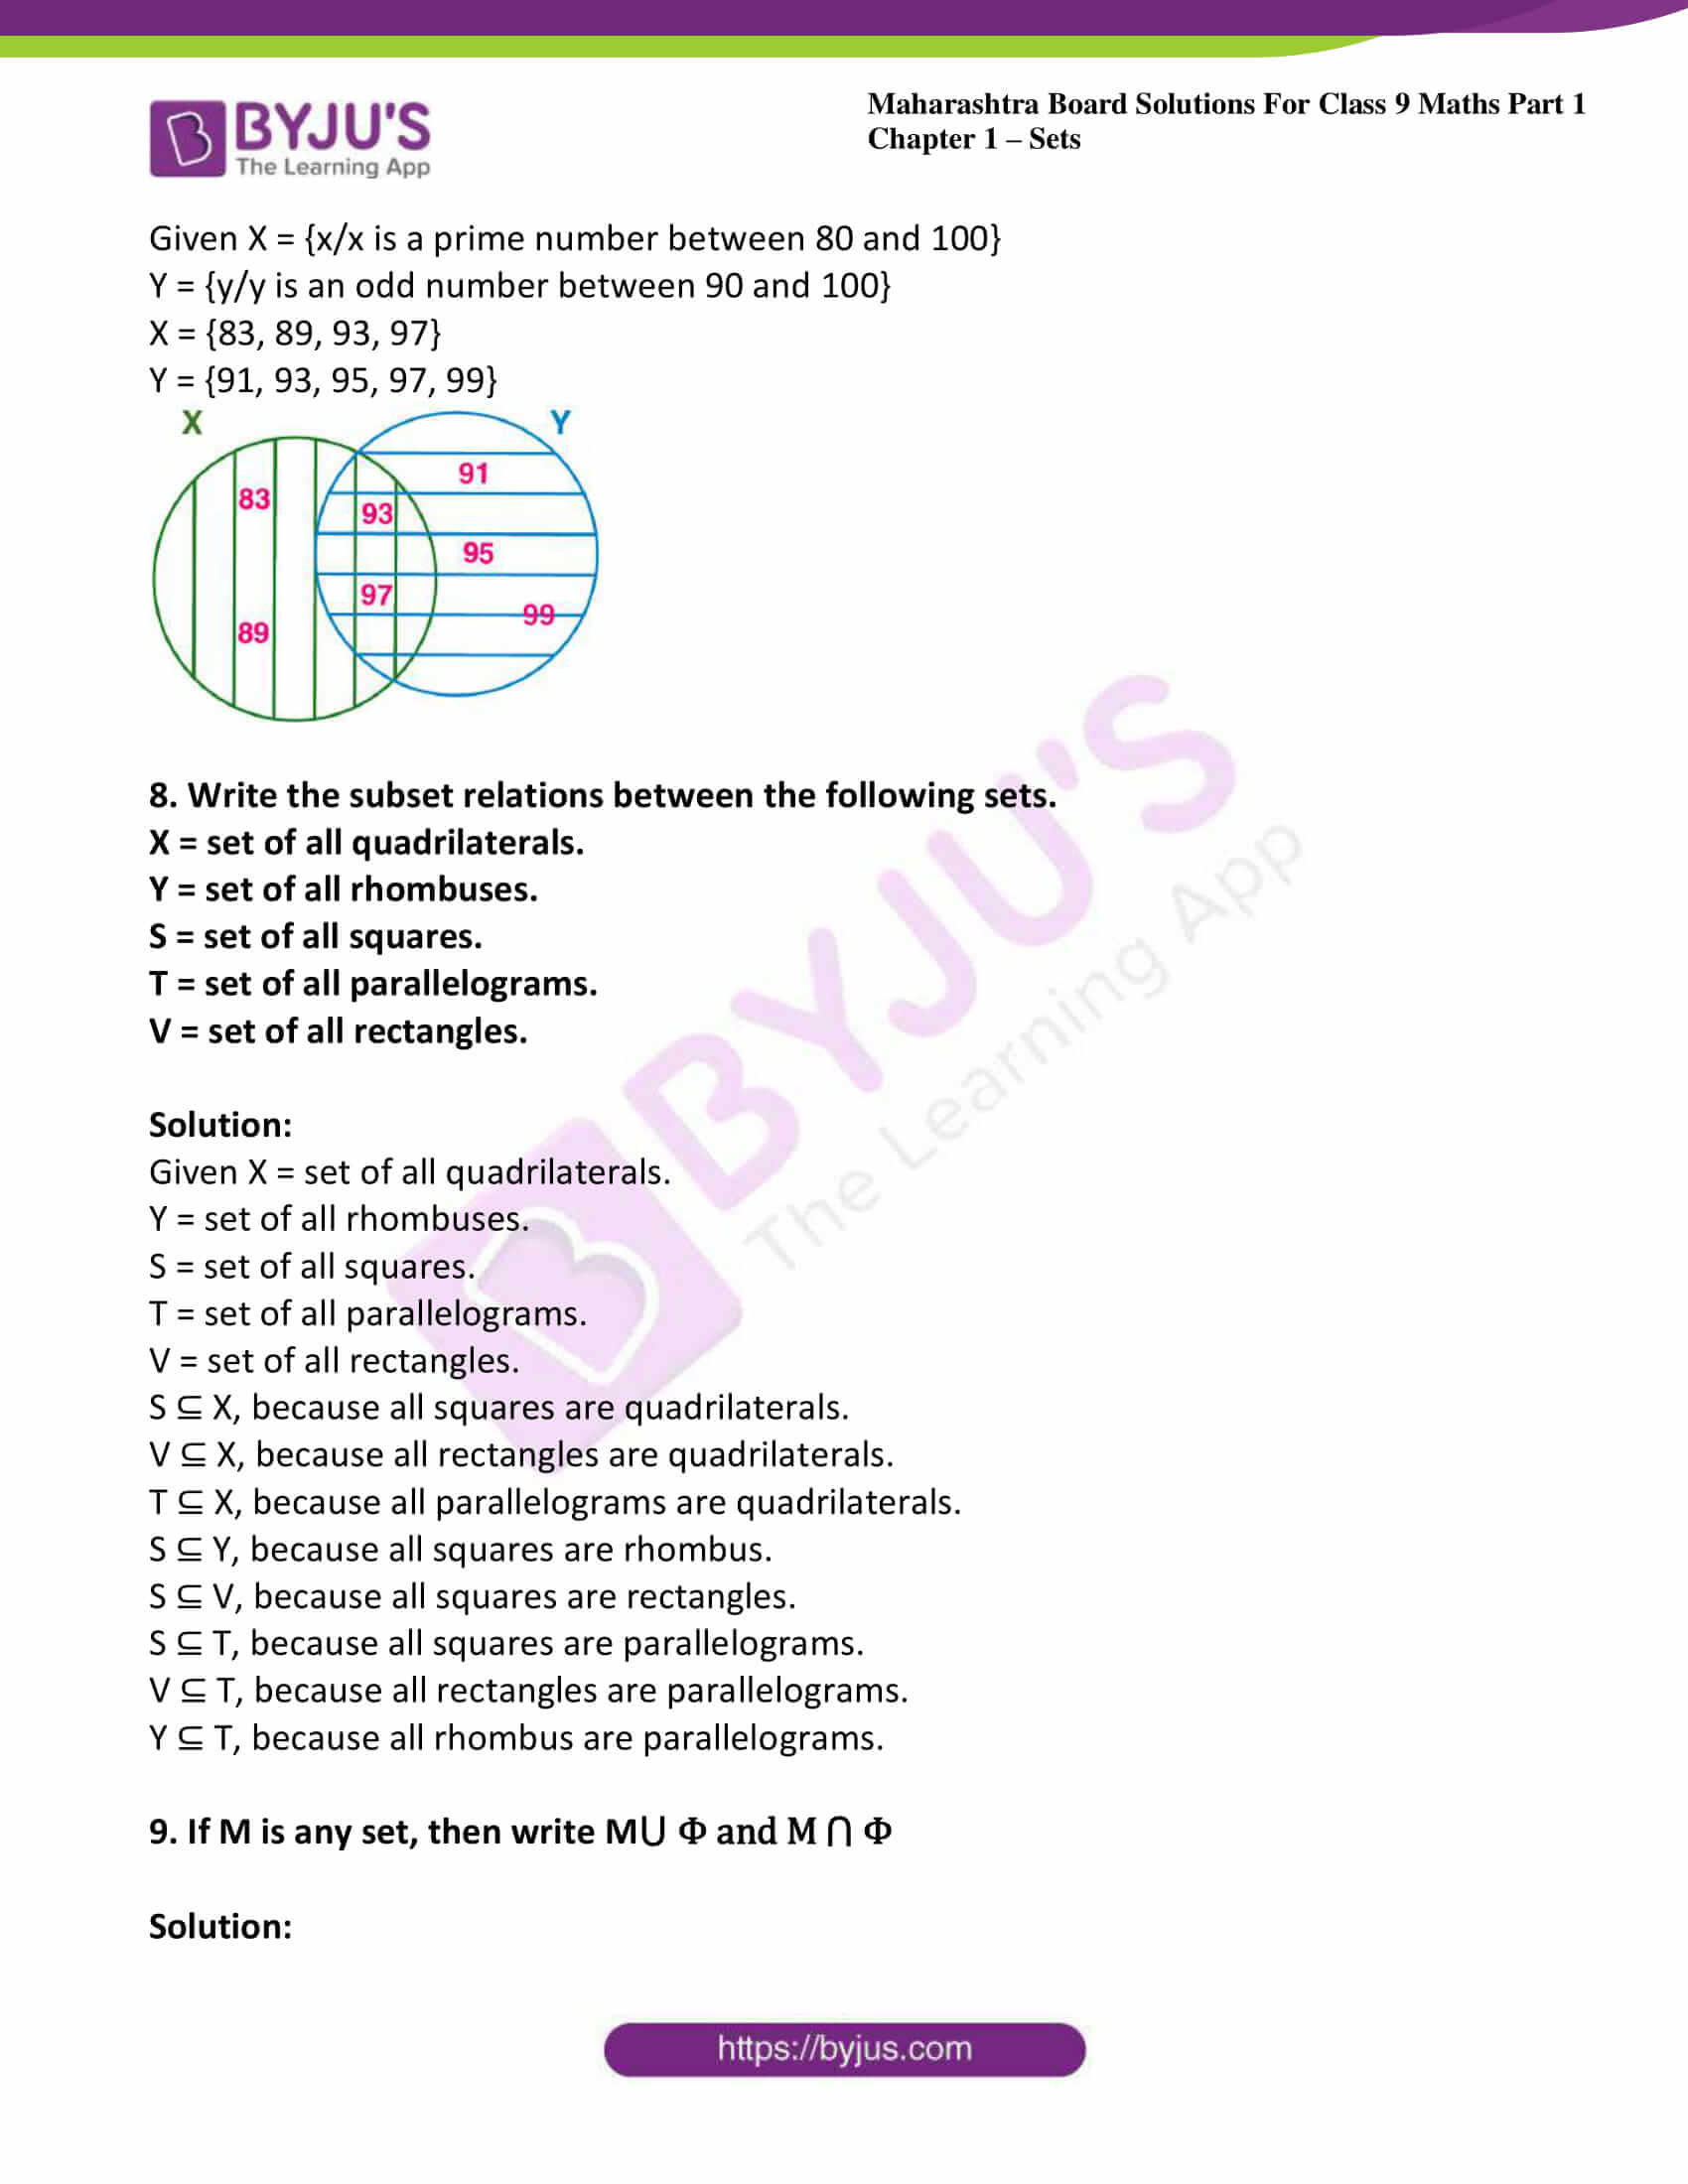 msbshse sol class 9 maths part 1 chapter 1 sets 24